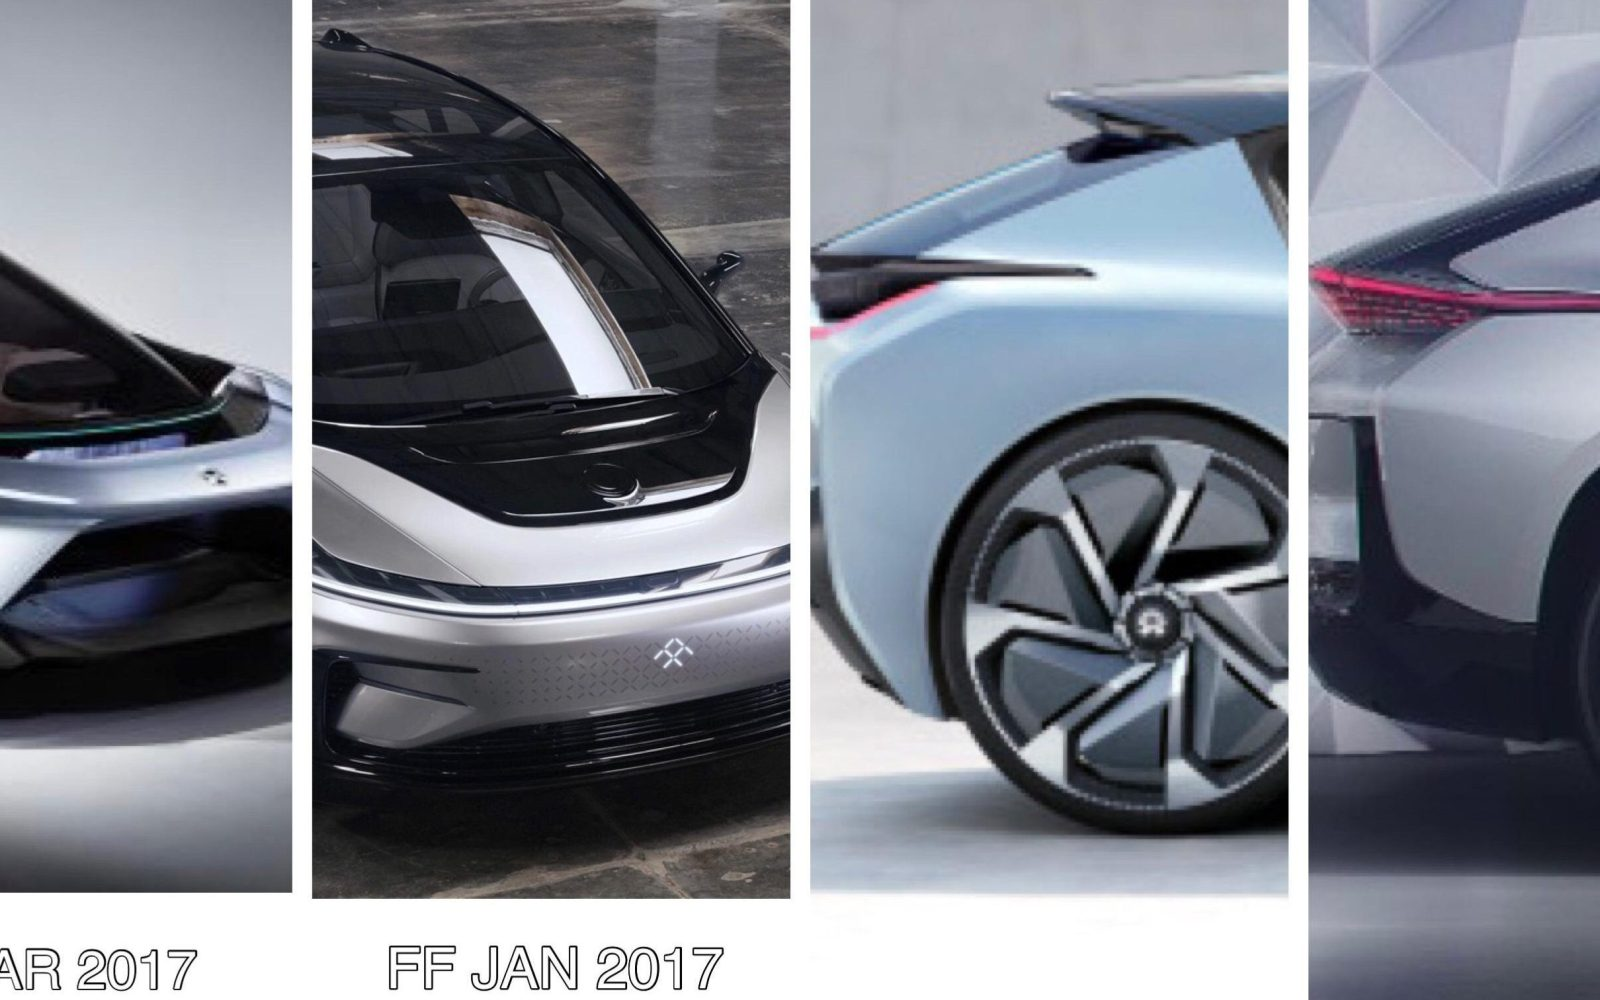 Faraday Future claims NIO copied its design for their new electric concept – what do you think?